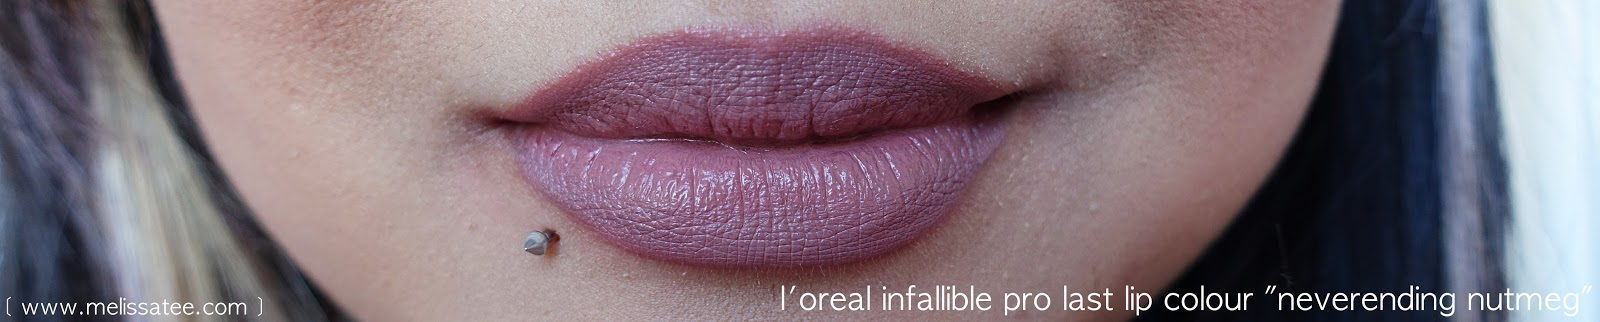 top liquid lipsticks, best liquid lipsticks, liquid lipstick, liquid lipsticks, rimmel provocalips, rimmel provocalips play with fire, rimmel provocalips play with fire swatches, l'oreal pro last lip colour, l'oreal pro last lip colour swatches, l'oreal infallible pro last lip colour neverending nutmeg swatches, neverending nutmeg swatches, too faced melted candy, too faced melted liquified long wear lipstick swatches, stila stay all day liquid lipstick, stila stay all day liquid lipstick in fiery, stila fiery lipstick, anastasia beverly hills, anastasia beverly hills vintage, abh vintage, abh vintage swatch